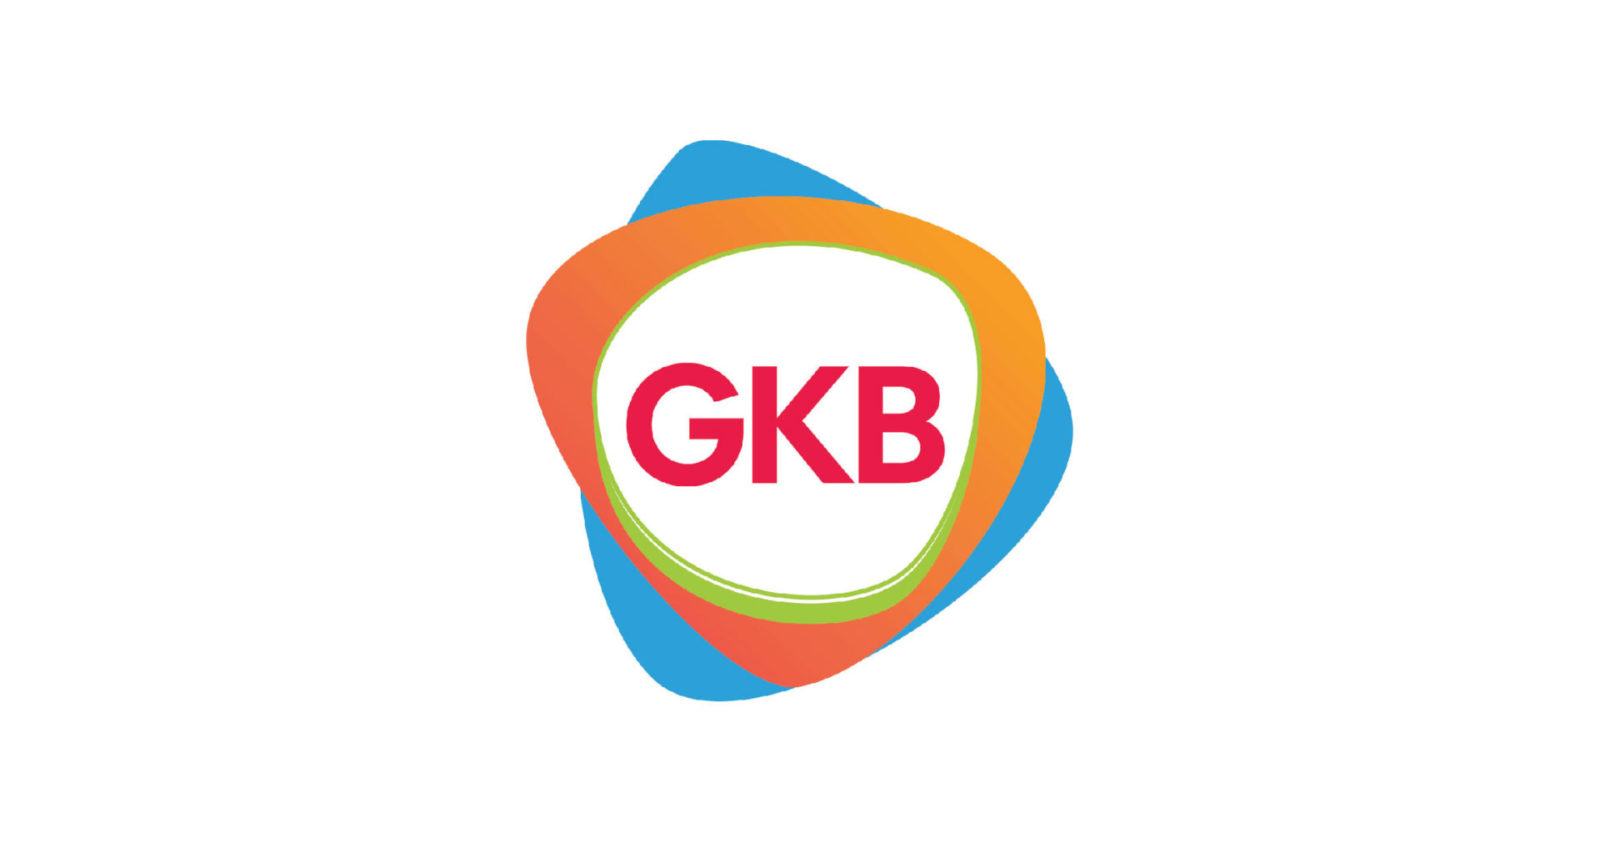 Alpro Pharmacy Oneclick GKB